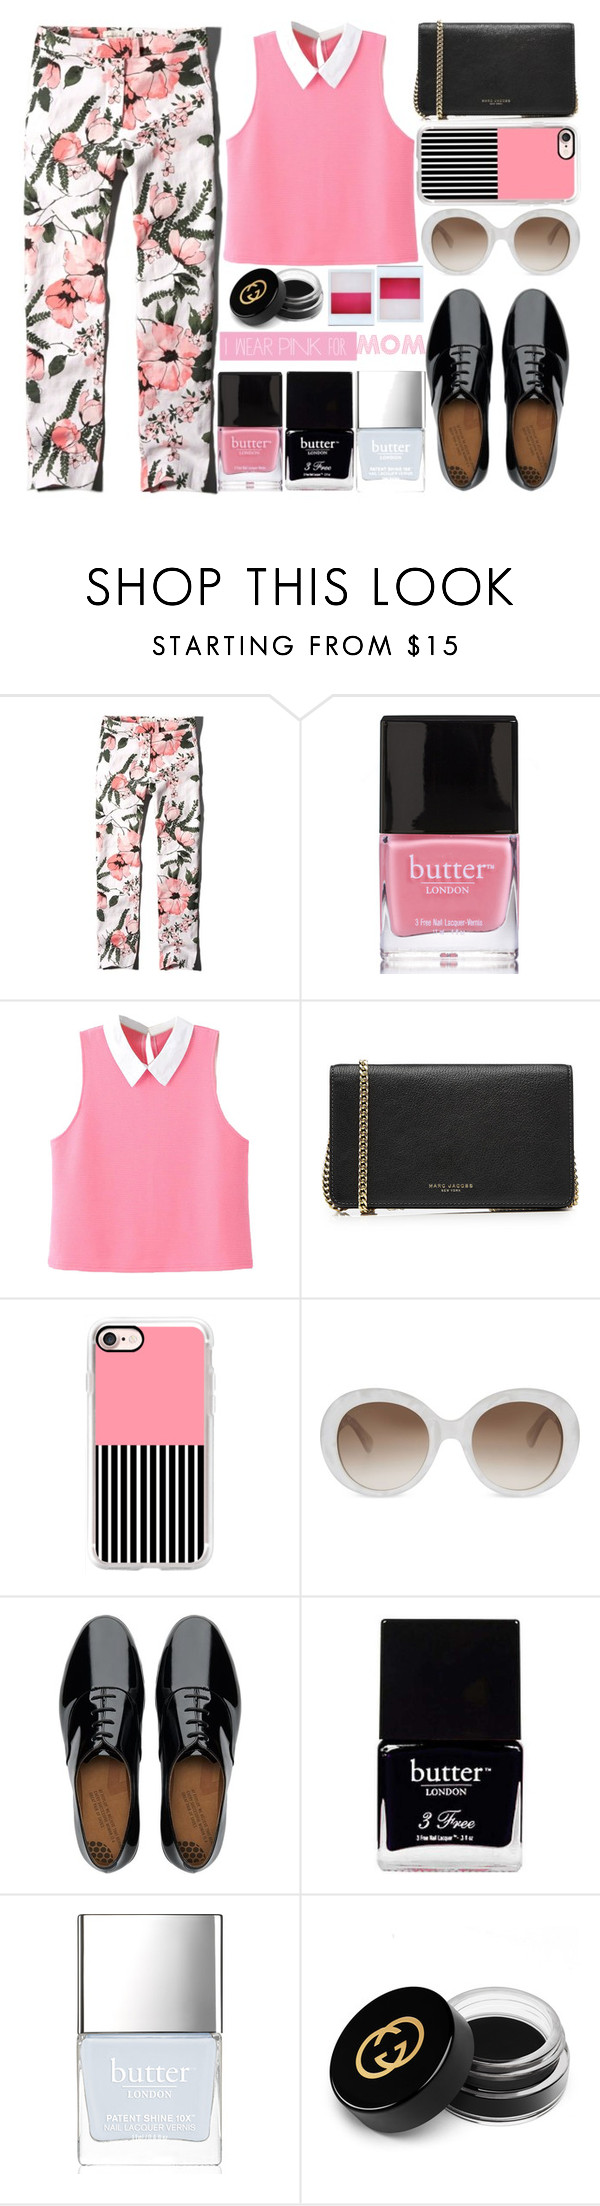 """I wear pink for Mom - Top Set 10/6/16"" by juliehalloran ❤ liked on Polyvore featuring Abercrombie & Fitch, Butter London, WithChic, Marc Jacobs, Casetify, Gucci, FitFlop, Holga and IWearPinkFor"